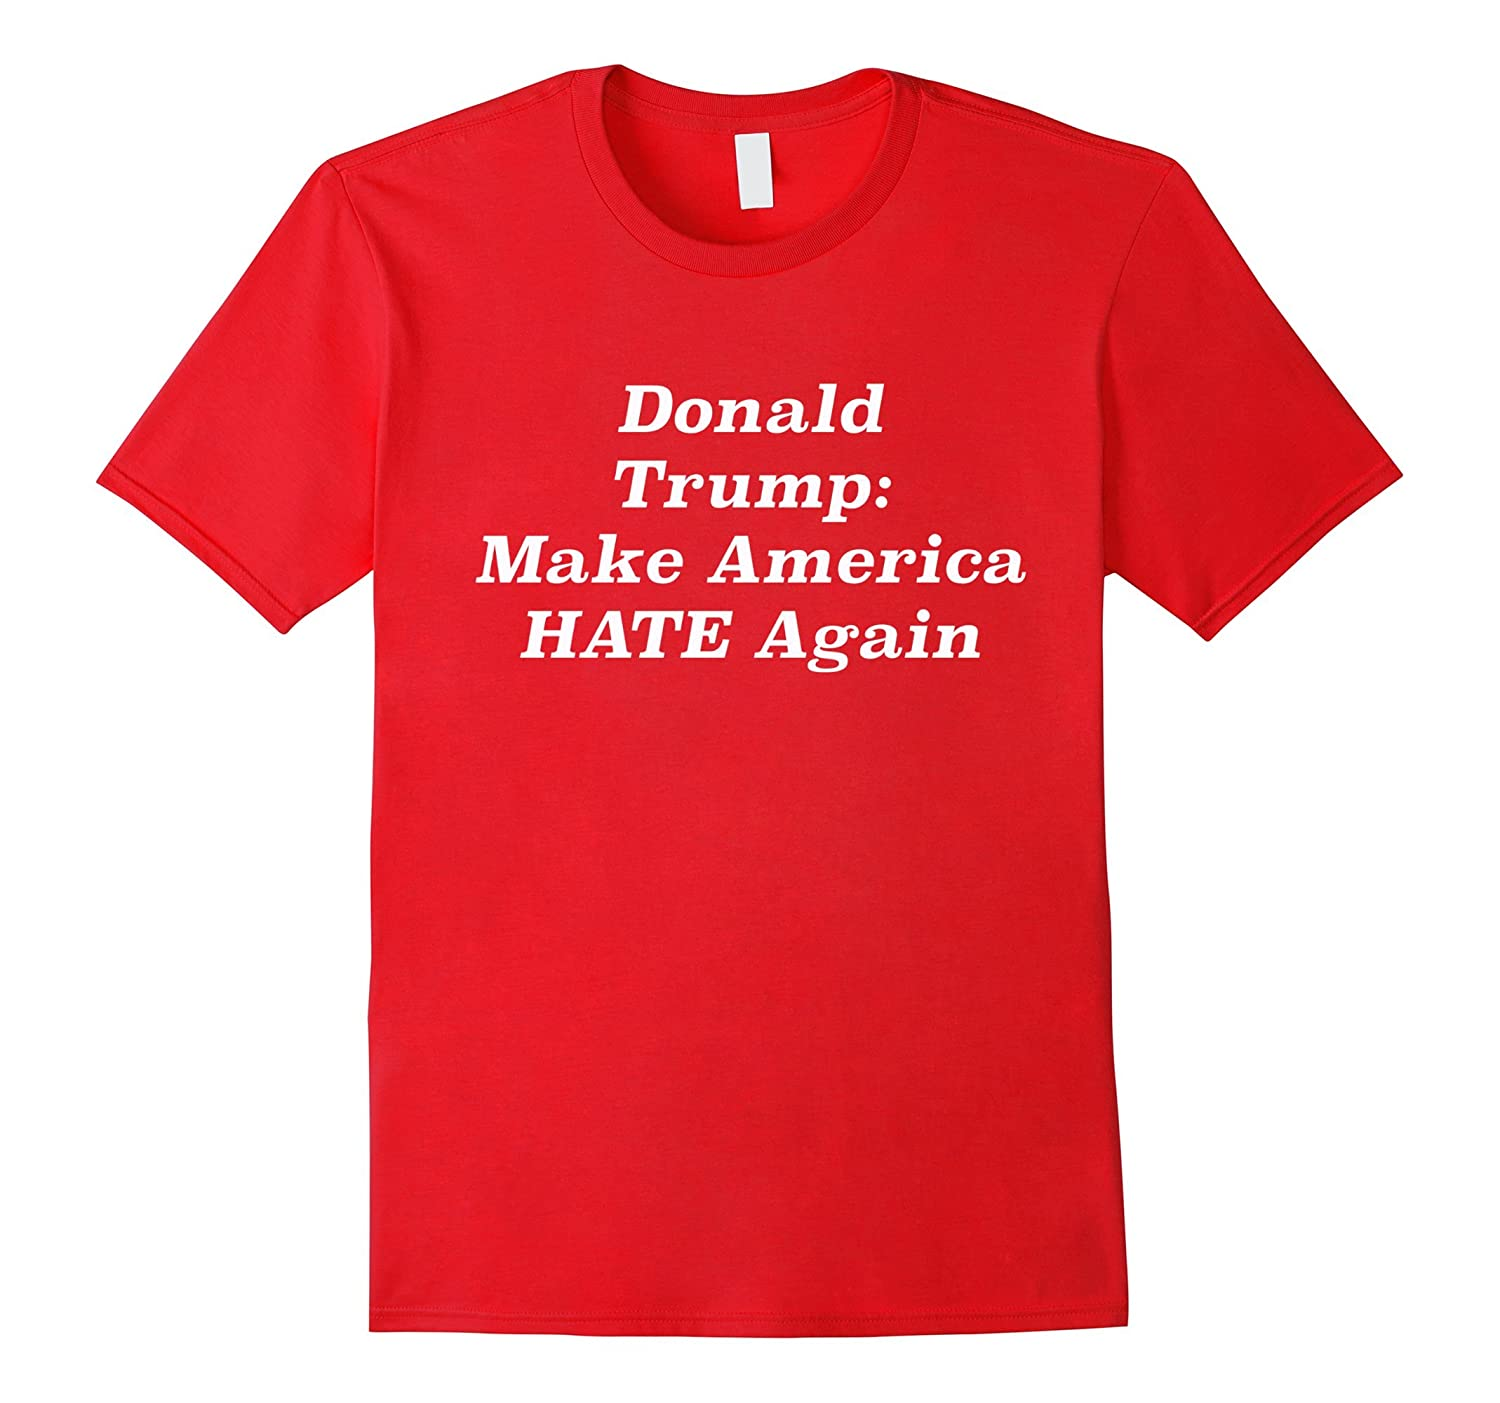 Donald Trump will Make America Hate Again T-shirt 2016 Anti-CD